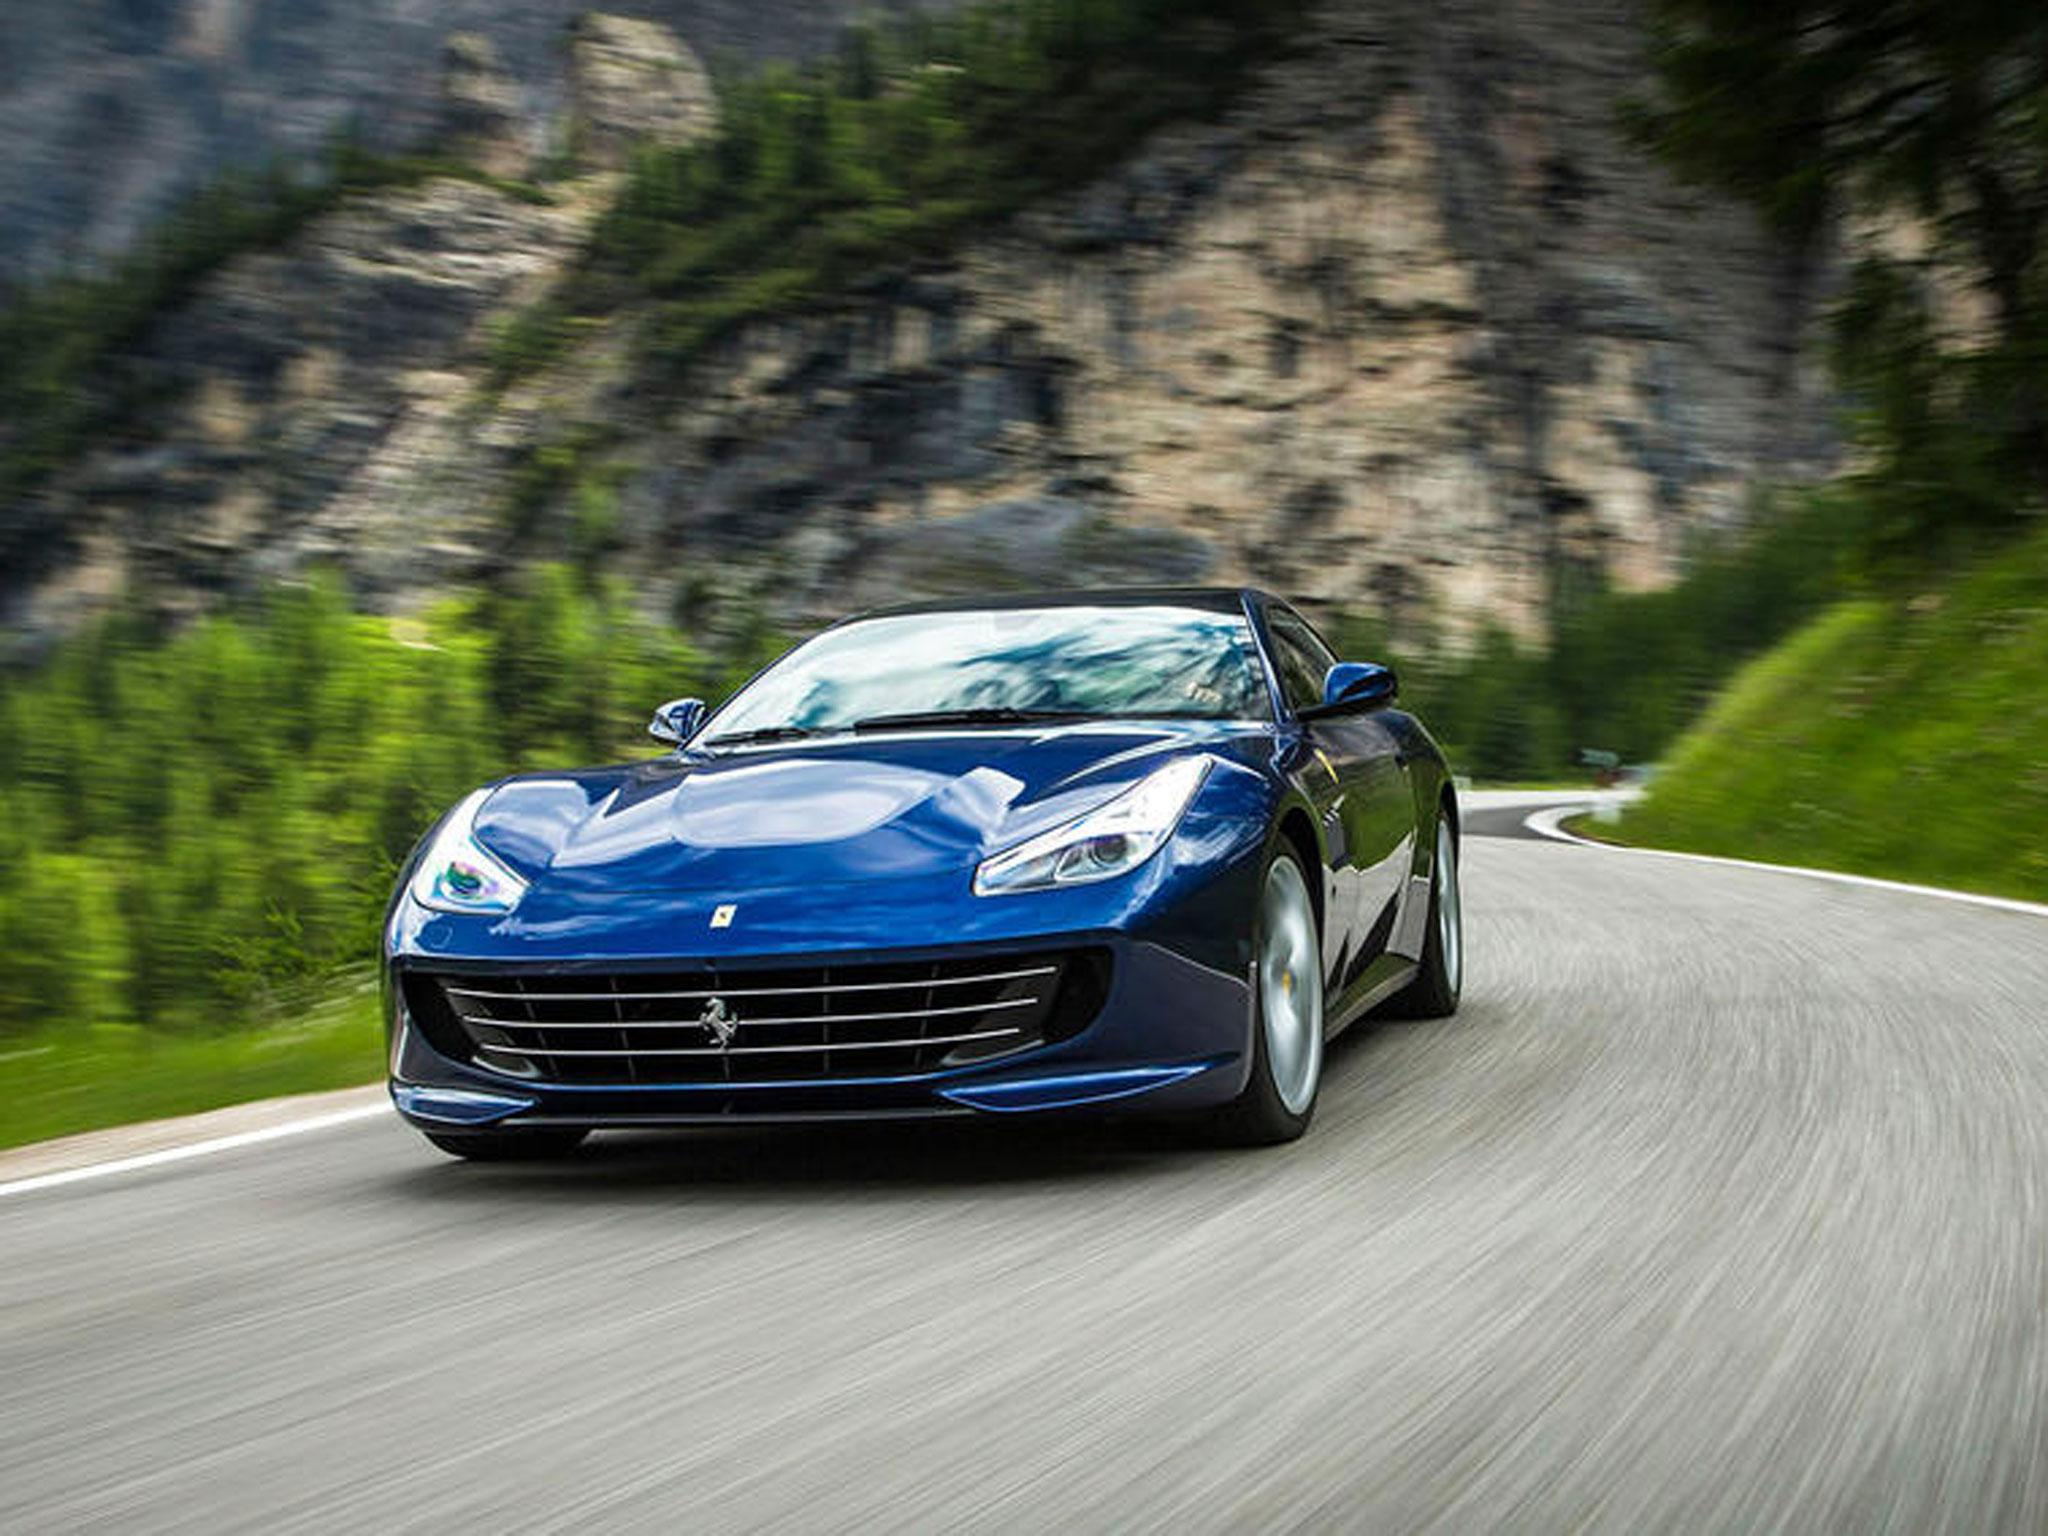 ferrari gtc4 lusso car review facelifted ff combines supercar performance with hatchback. Black Bedroom Furniture Sets. Home Design Ideas